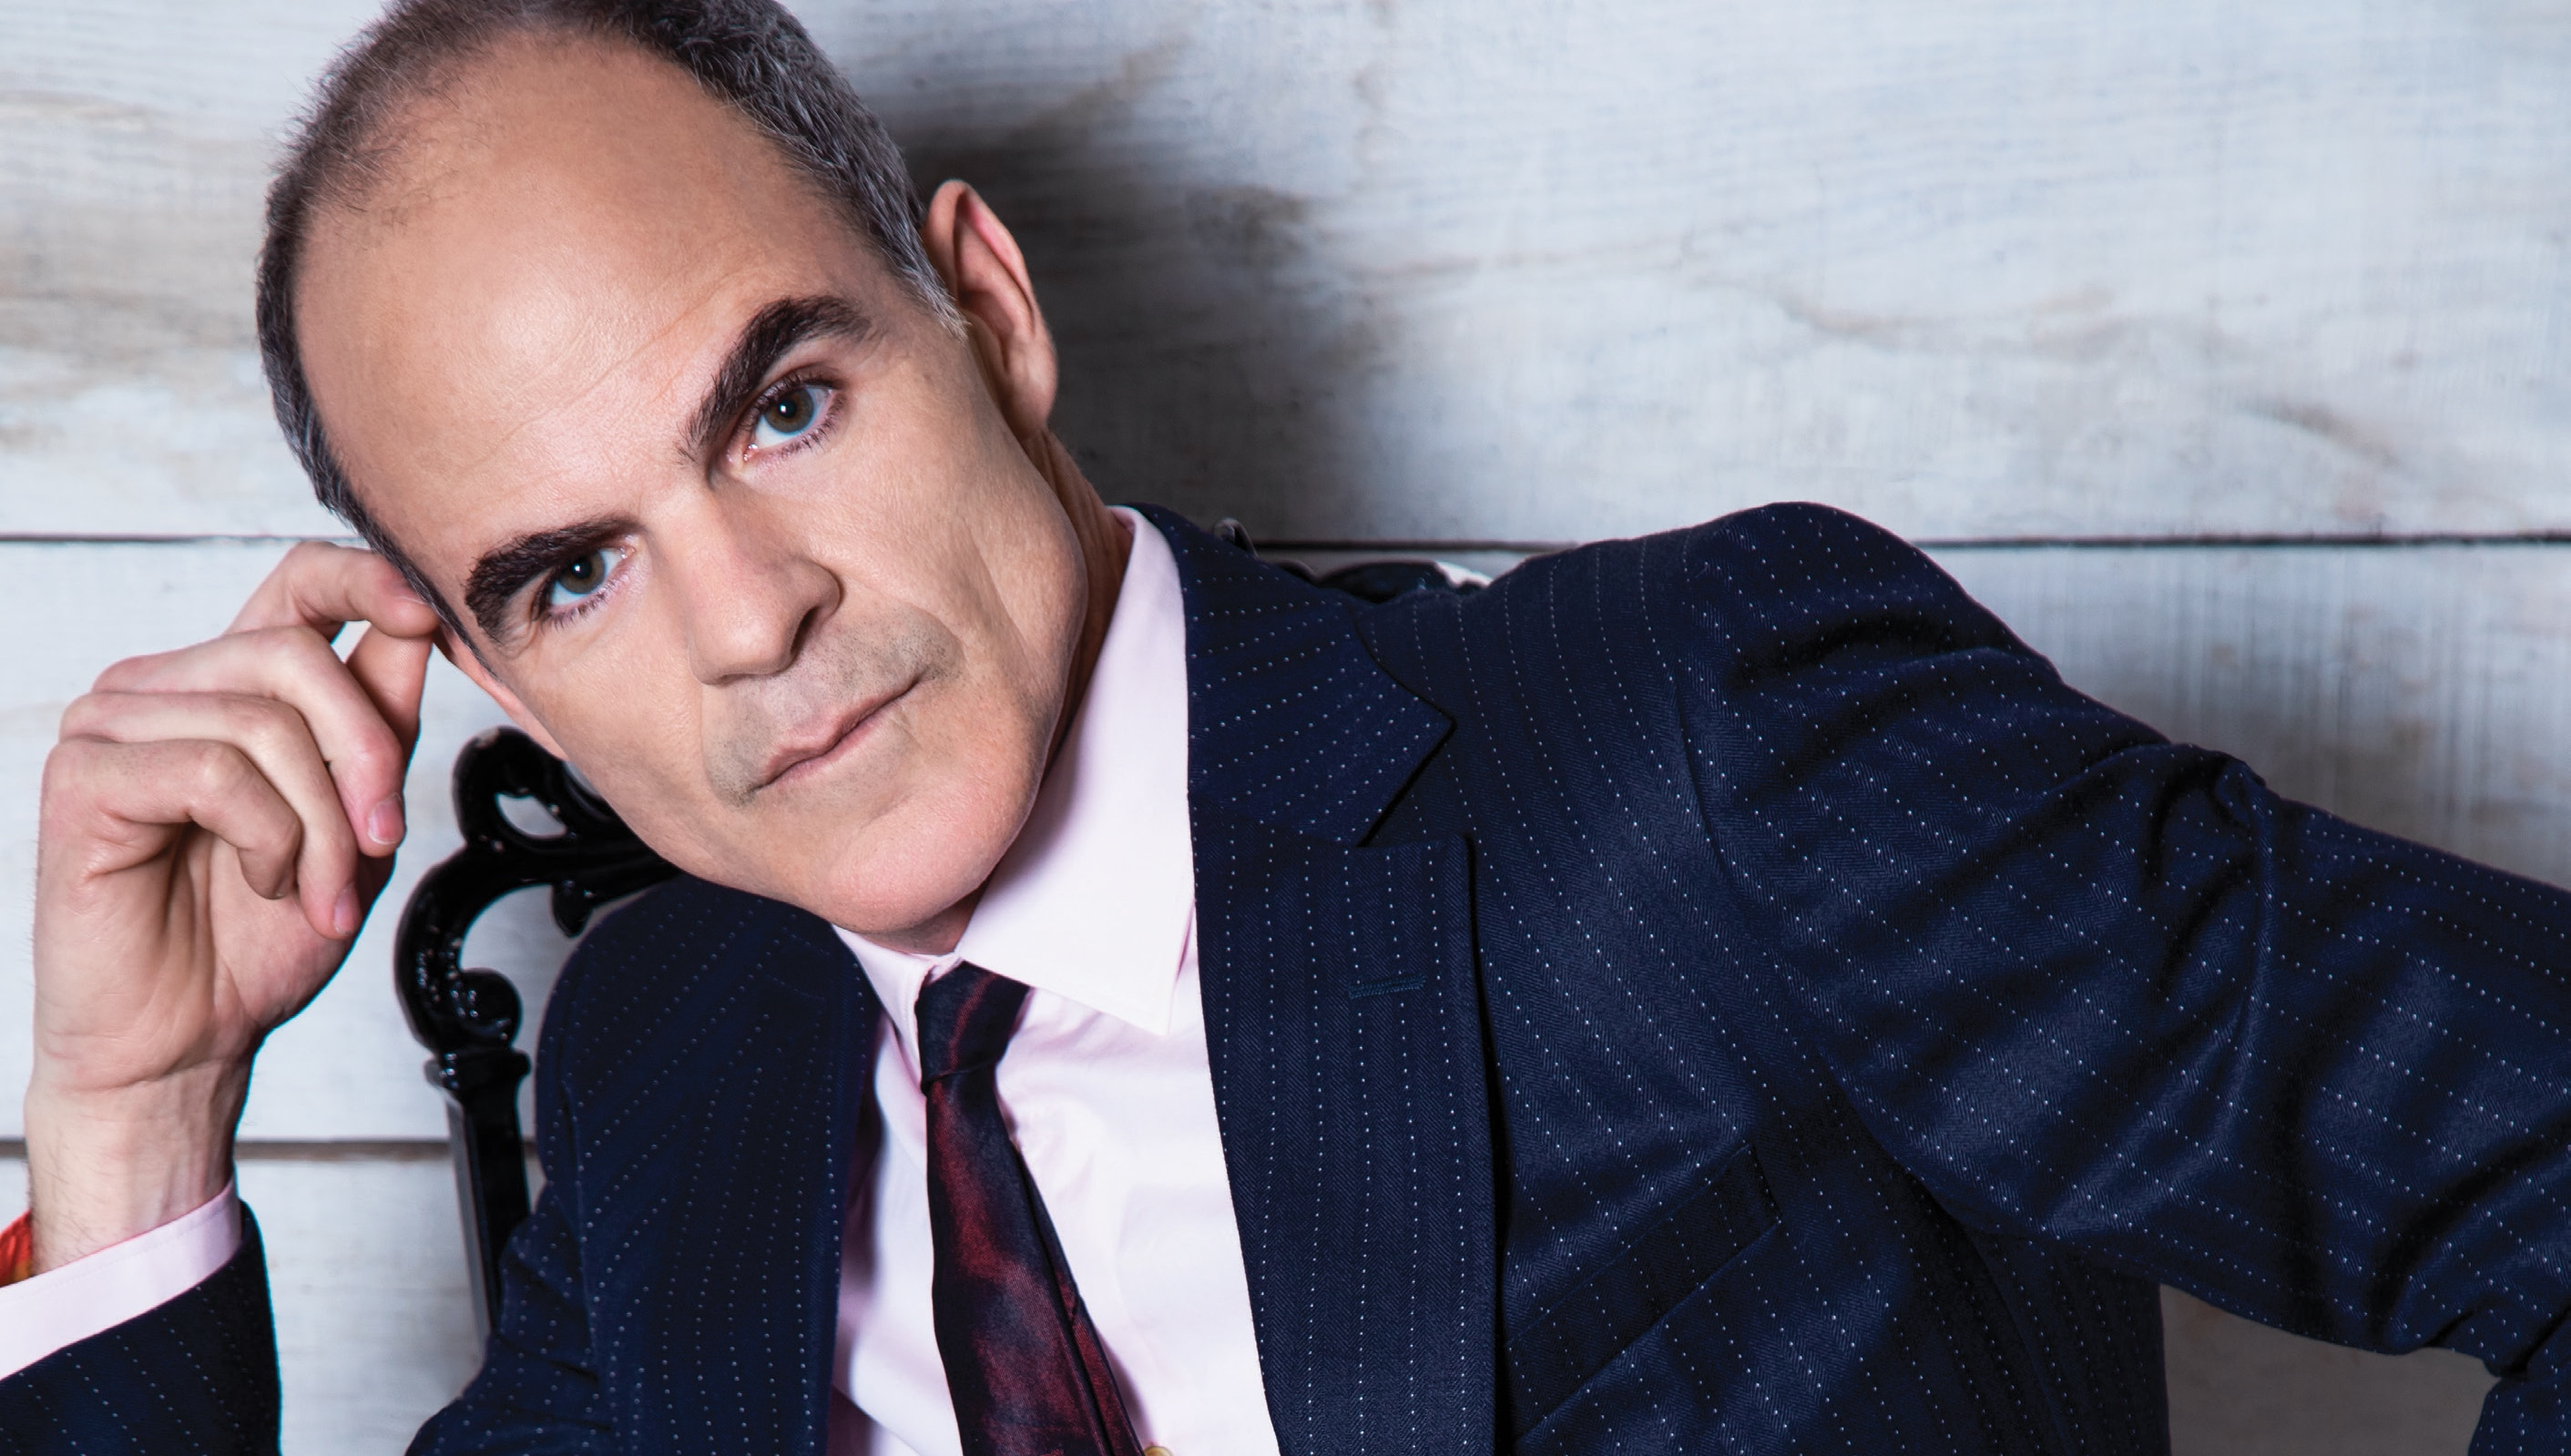 Michael Kelly on 'House of Cards', Politics & Lobbying on Capitol Hill